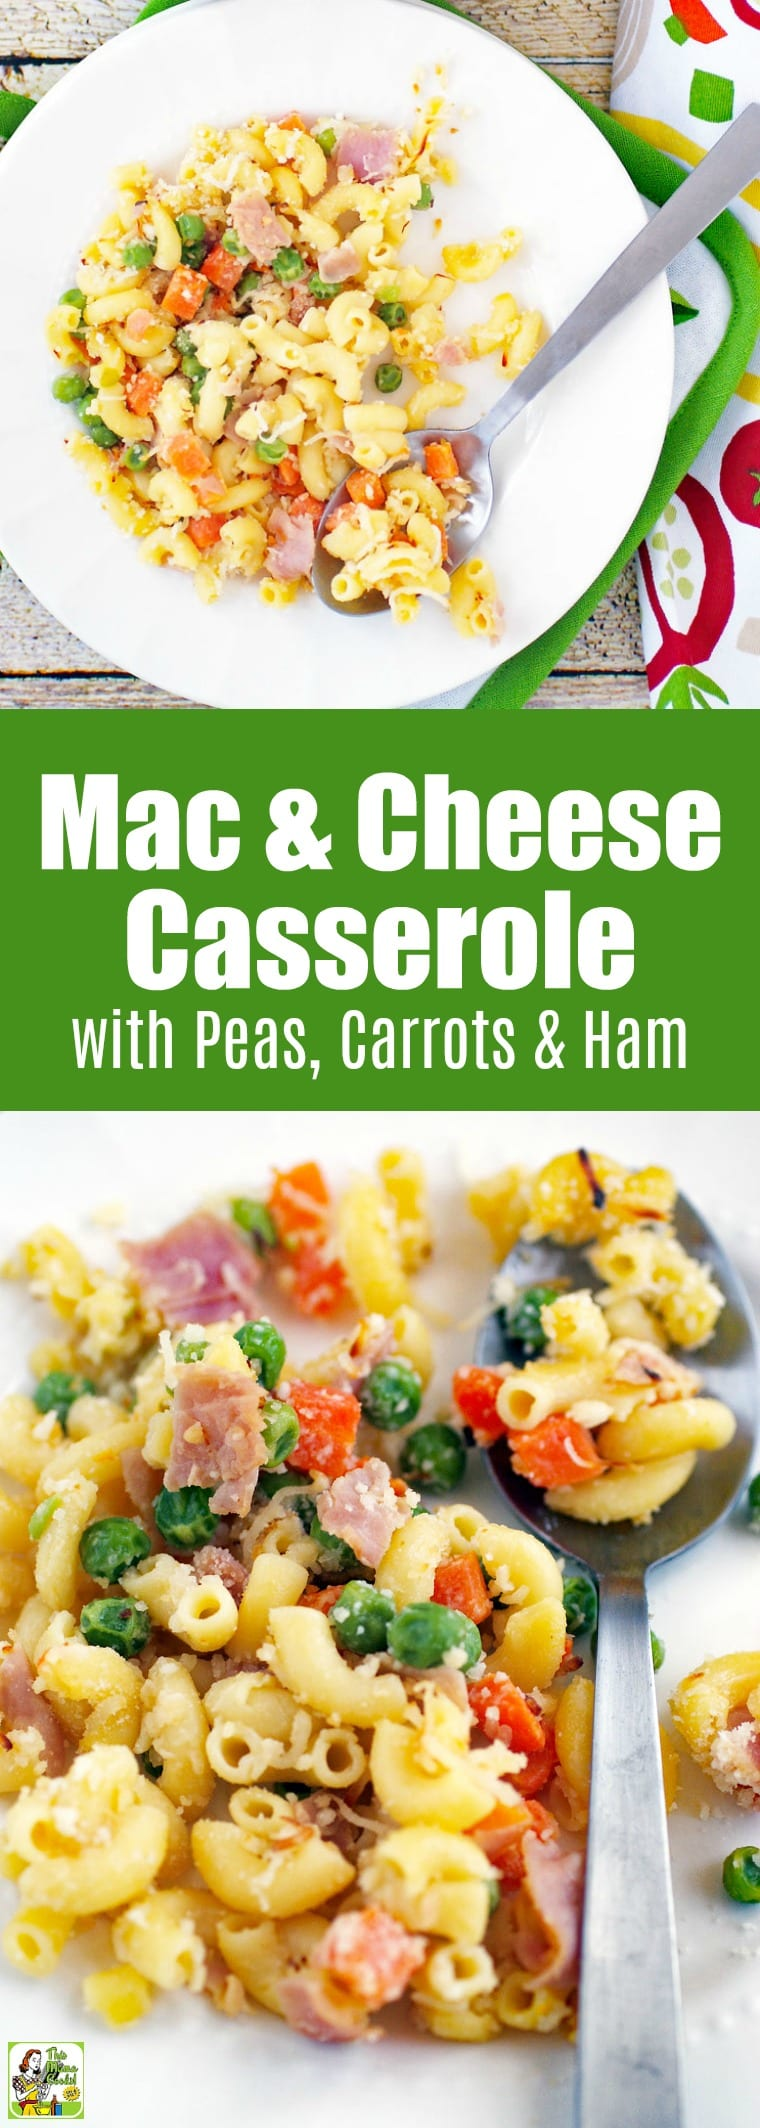 Make this mac & cheese casserole with peas, carrots & ham for dinner. This easy baked mac and cheese takes 30 minutes to make. #glutenfree #glutenfreerecipes #dinner #easydinner #dinnerrecipes #macaroni #macandcheese #pasta #pastafoodrecipes #pastarecipes #casserole #casserolerecipes #30minutemeals